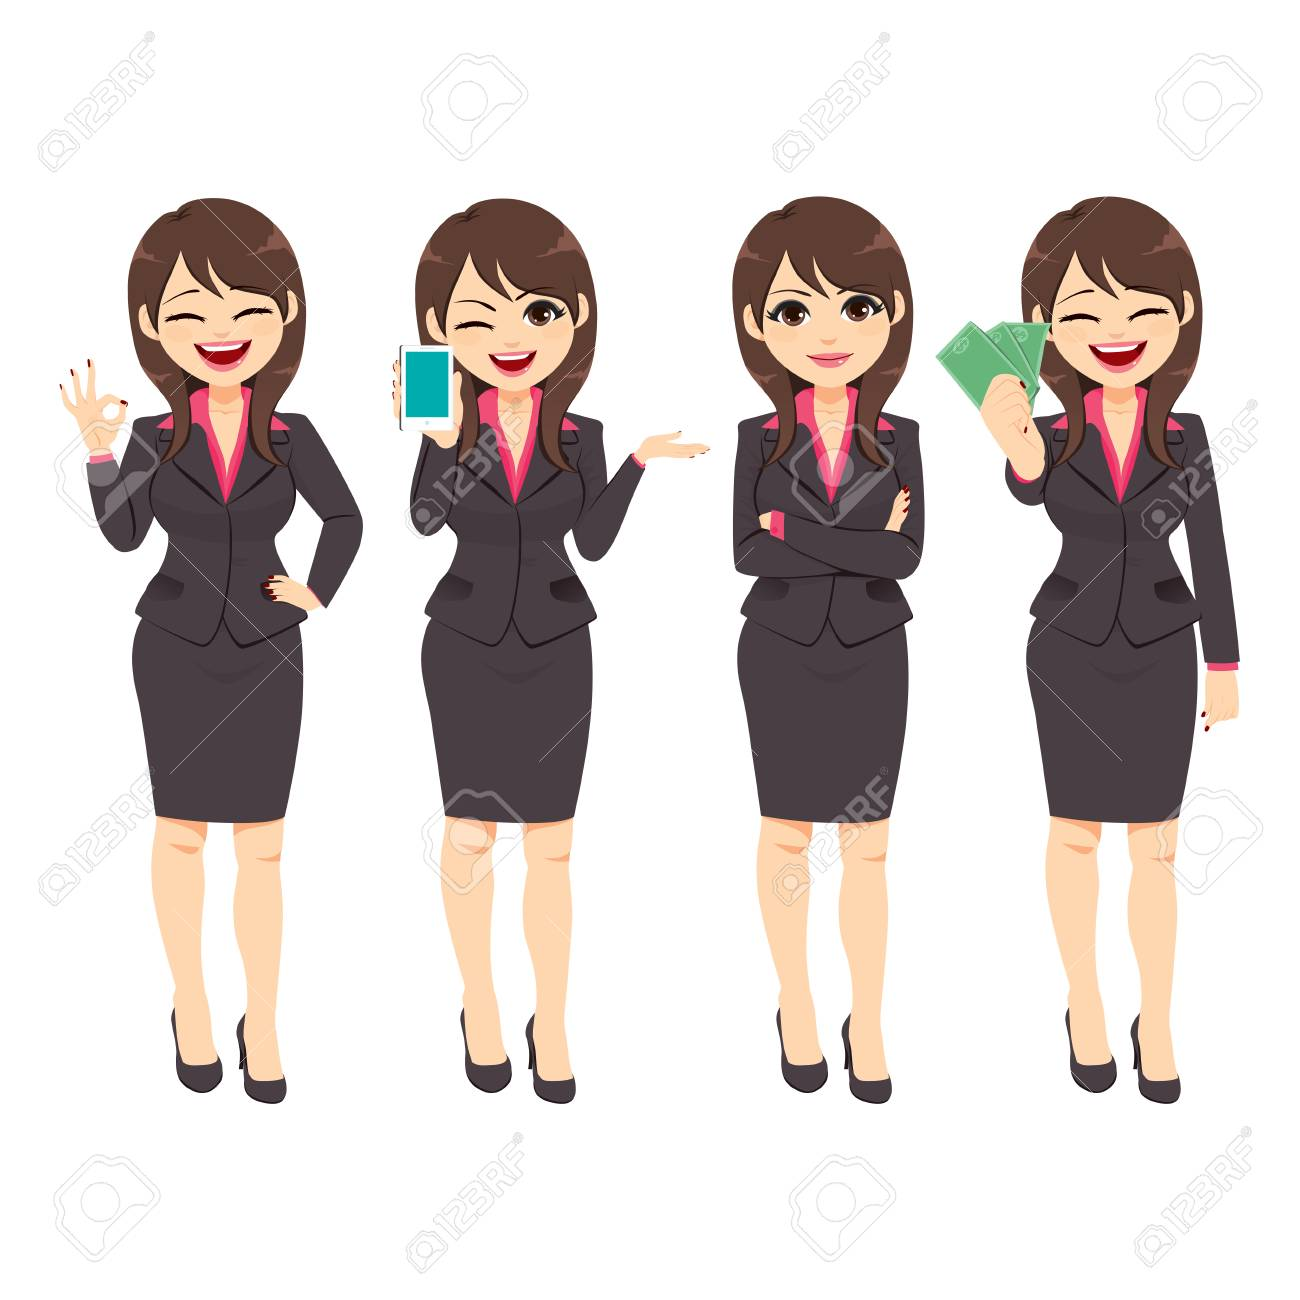 bd31346429ca4 Beautiful businesswoman working character on different poses holding  different office accessories Stock Vector - 113294816